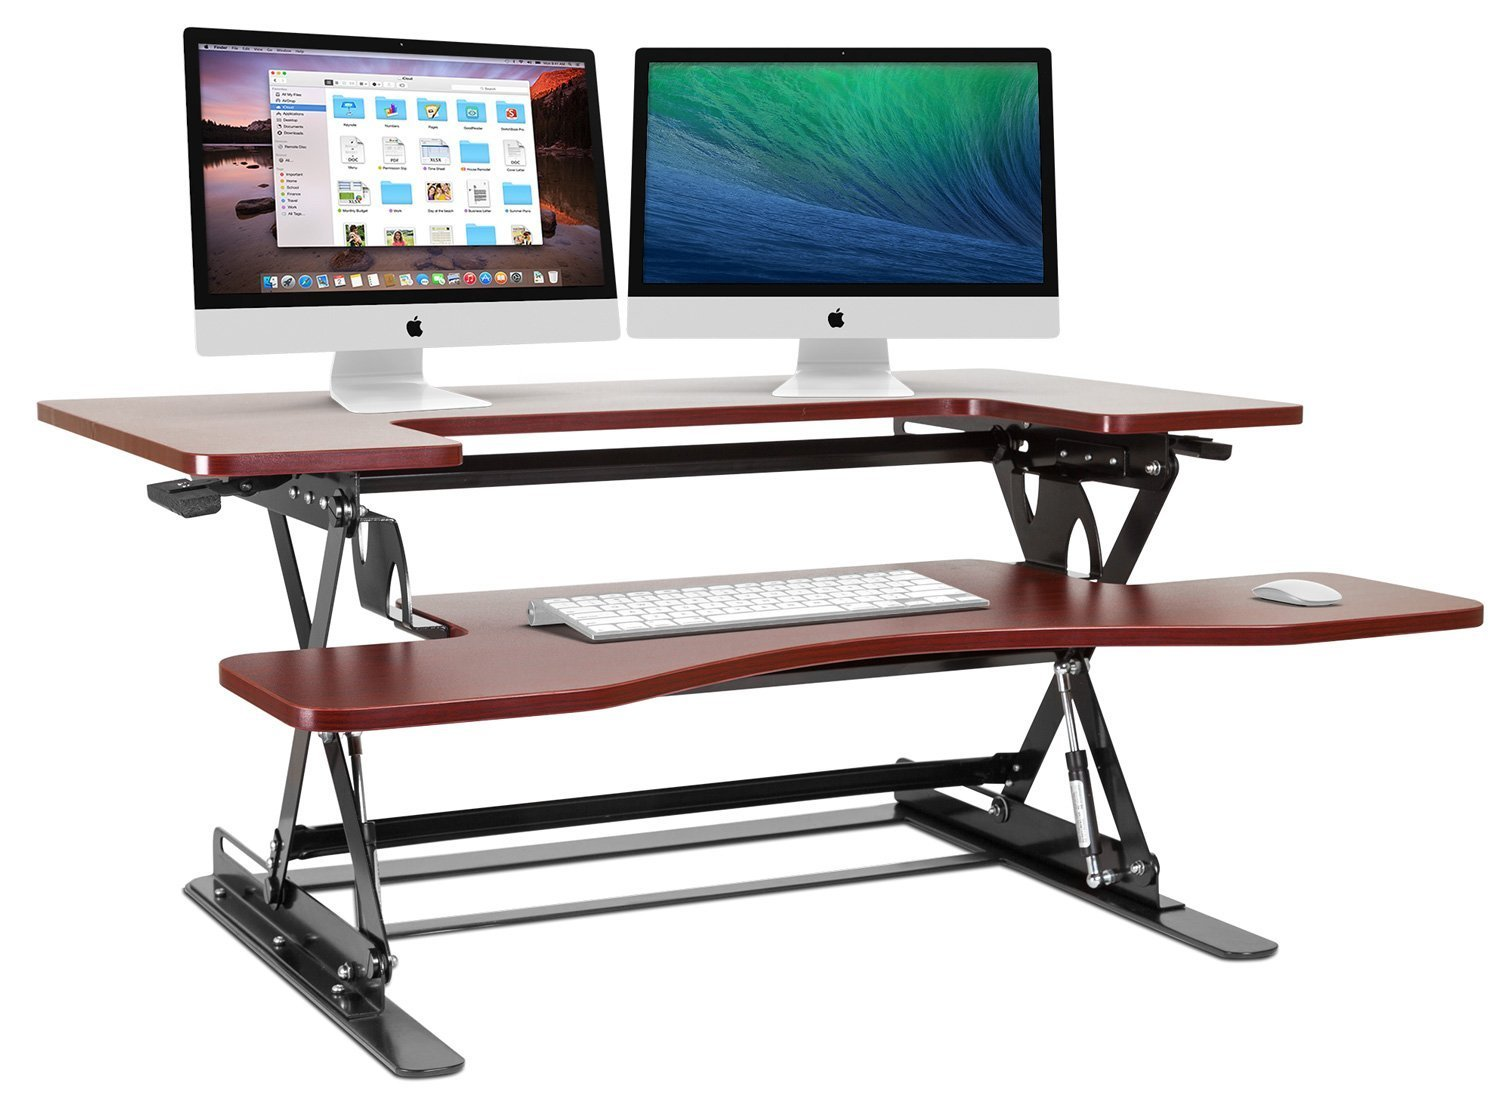 Halter Cherry Height Adjustable 36 Inch Stand Up Desk Preassembled Sit/Stand Desk Elevating Desktop ED-285